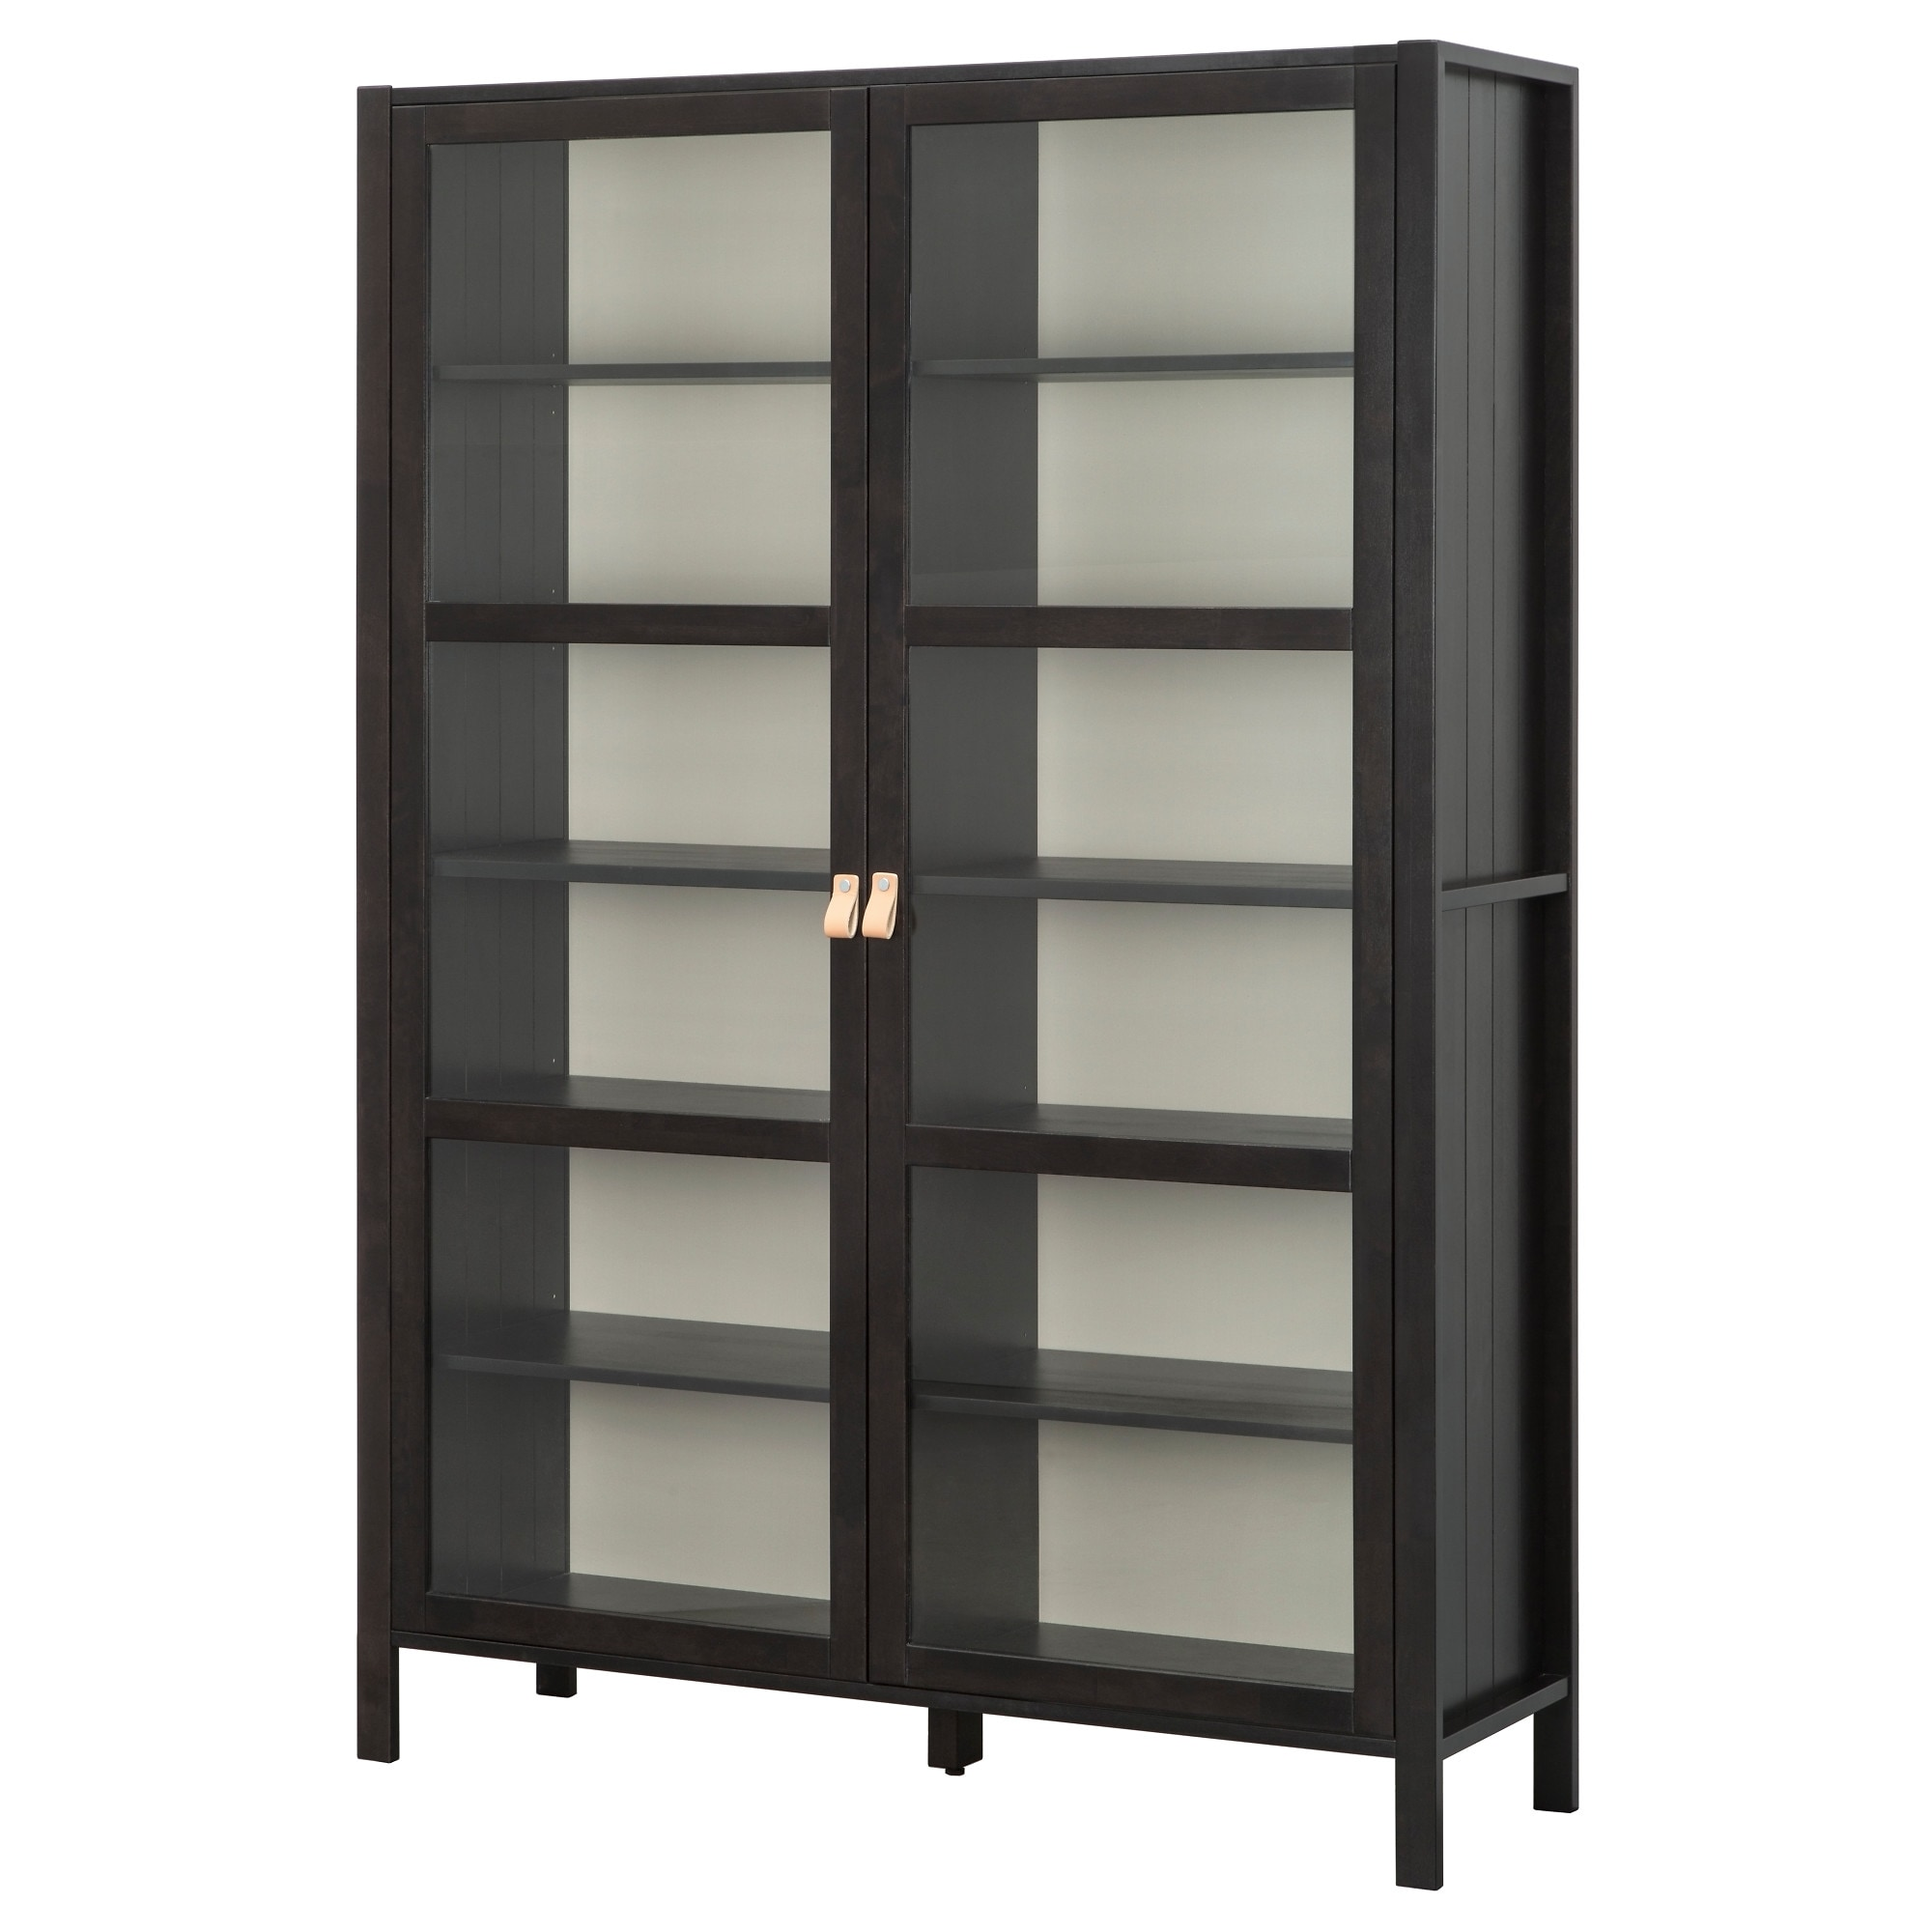 Ikea liquor cabinet roselawnlutheran for 50cm deep kitchen units